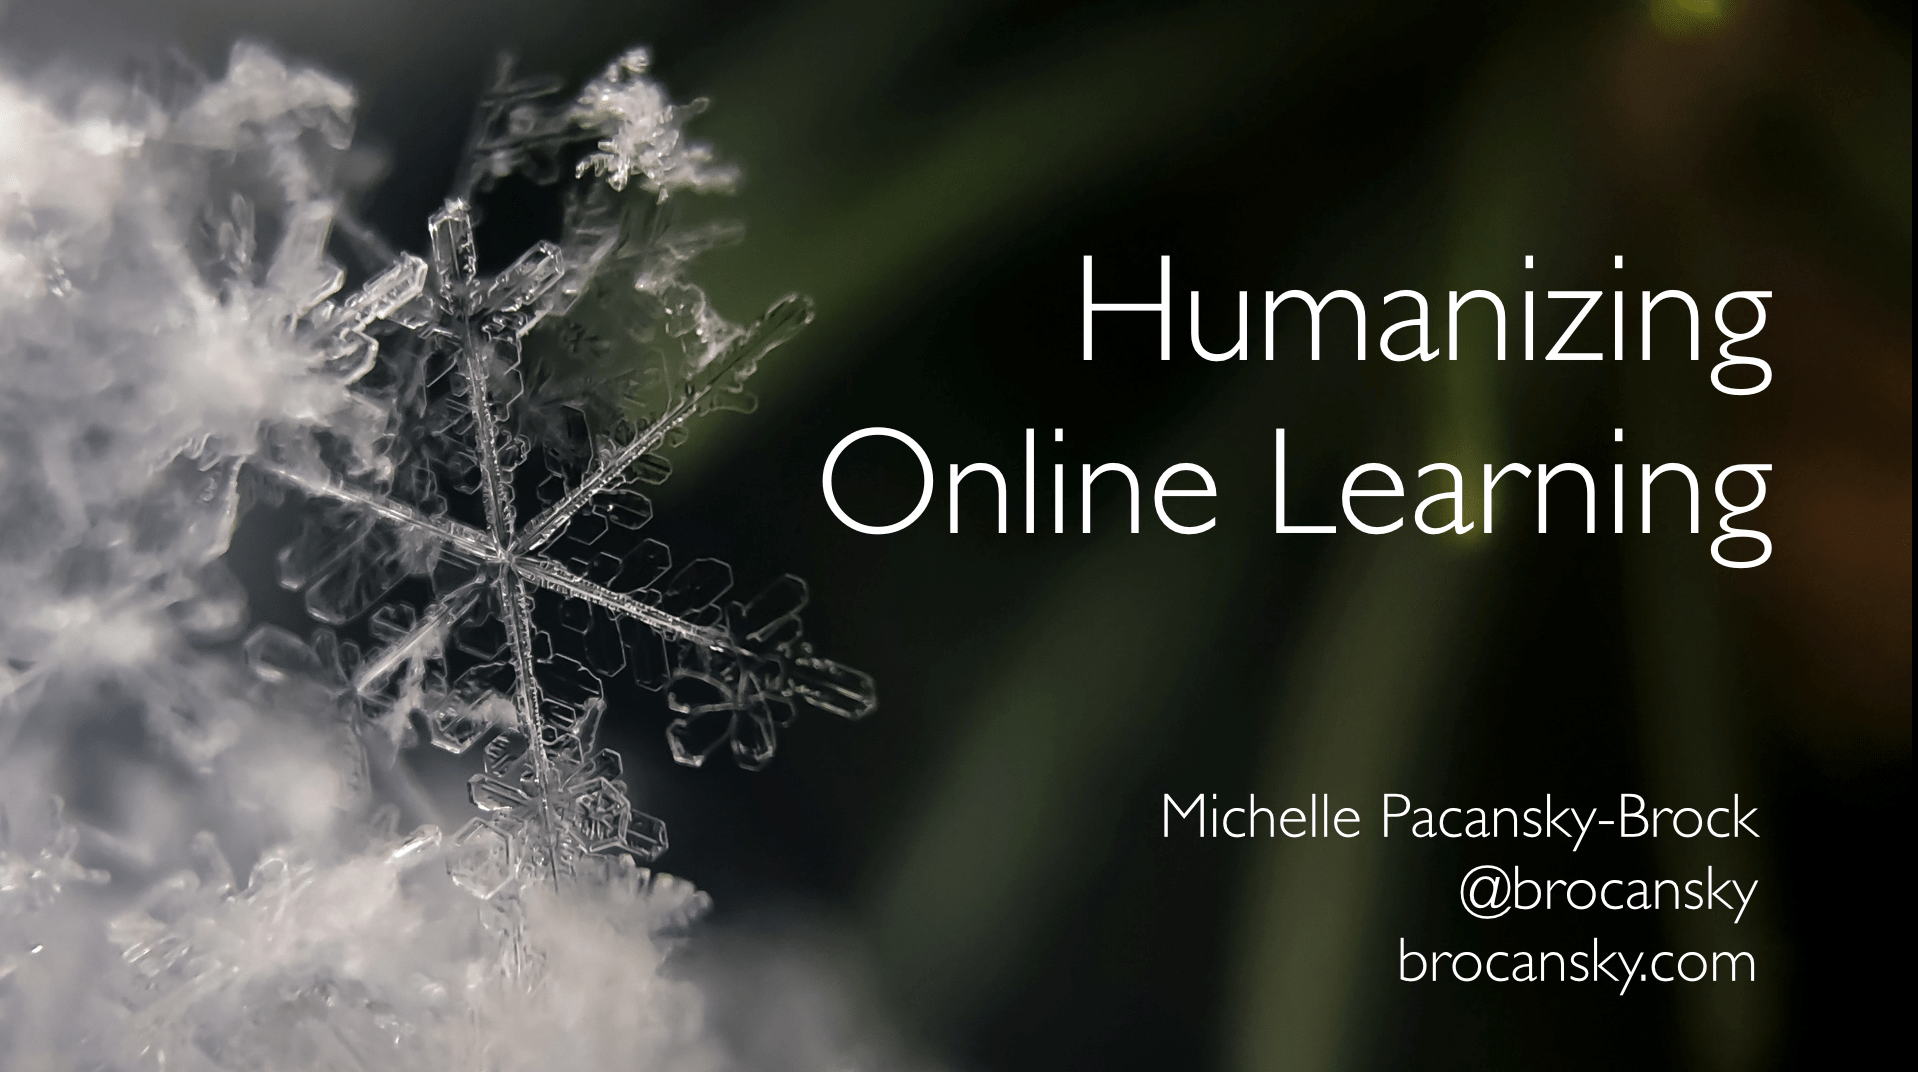 Humanizing Online Learning, Michelle Pacansky-Brock, @brocansky